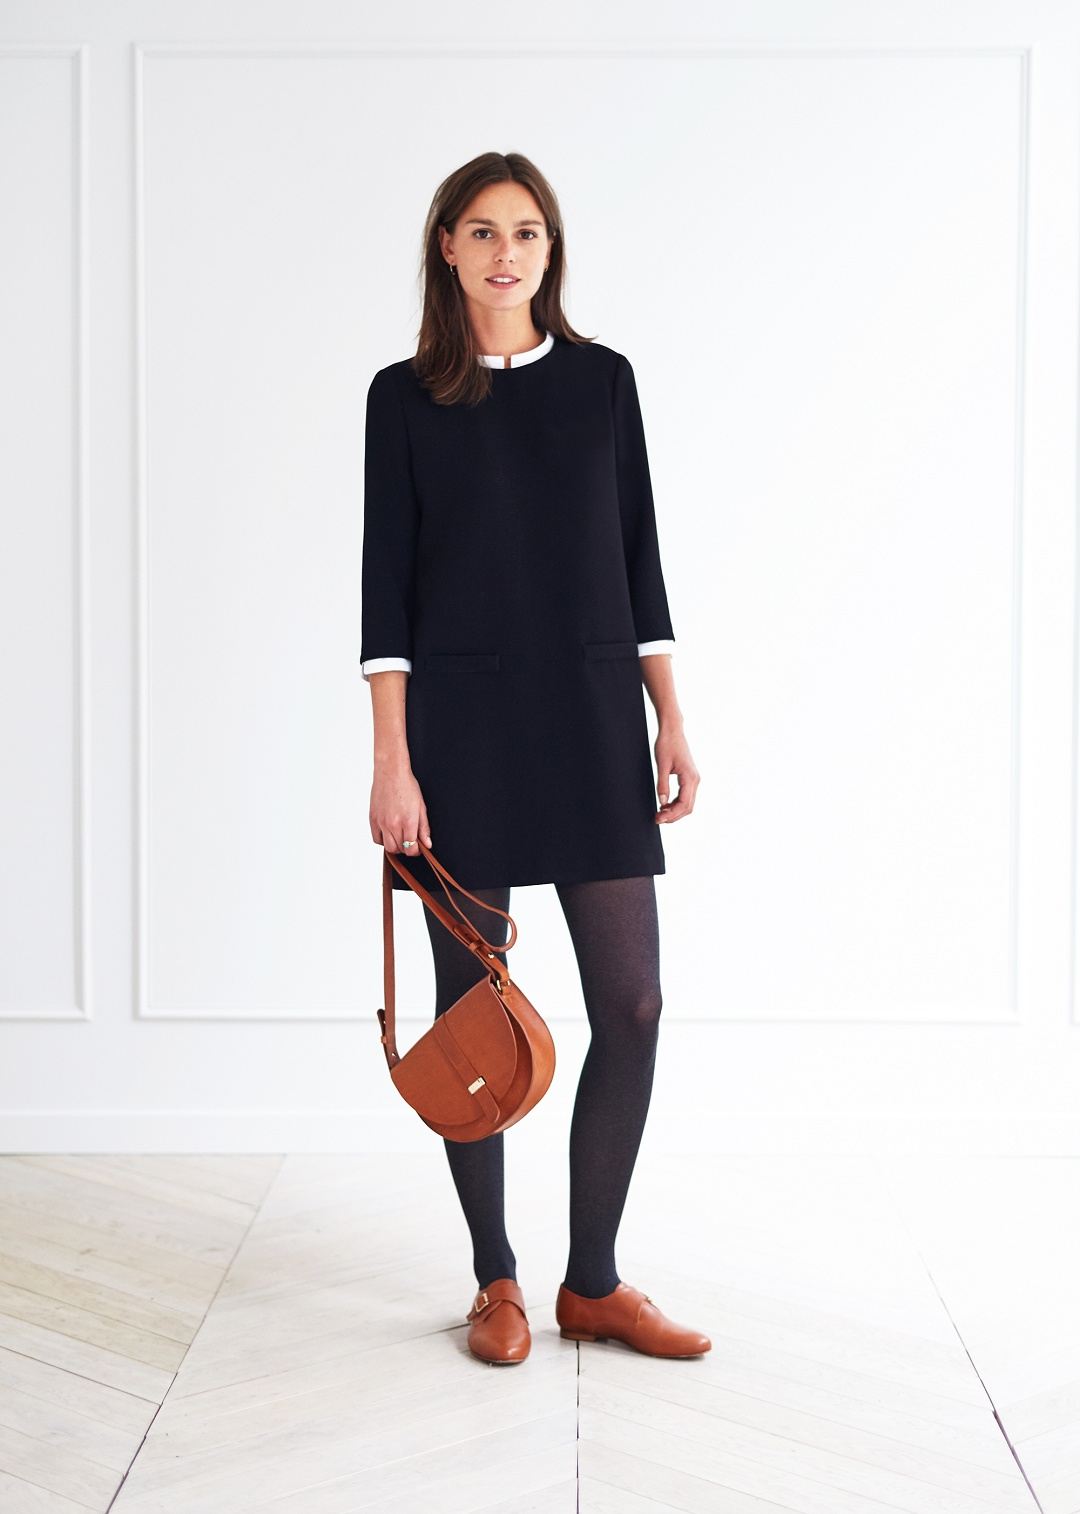 Sezane Fall Winter 2015 Collection Katie Considers